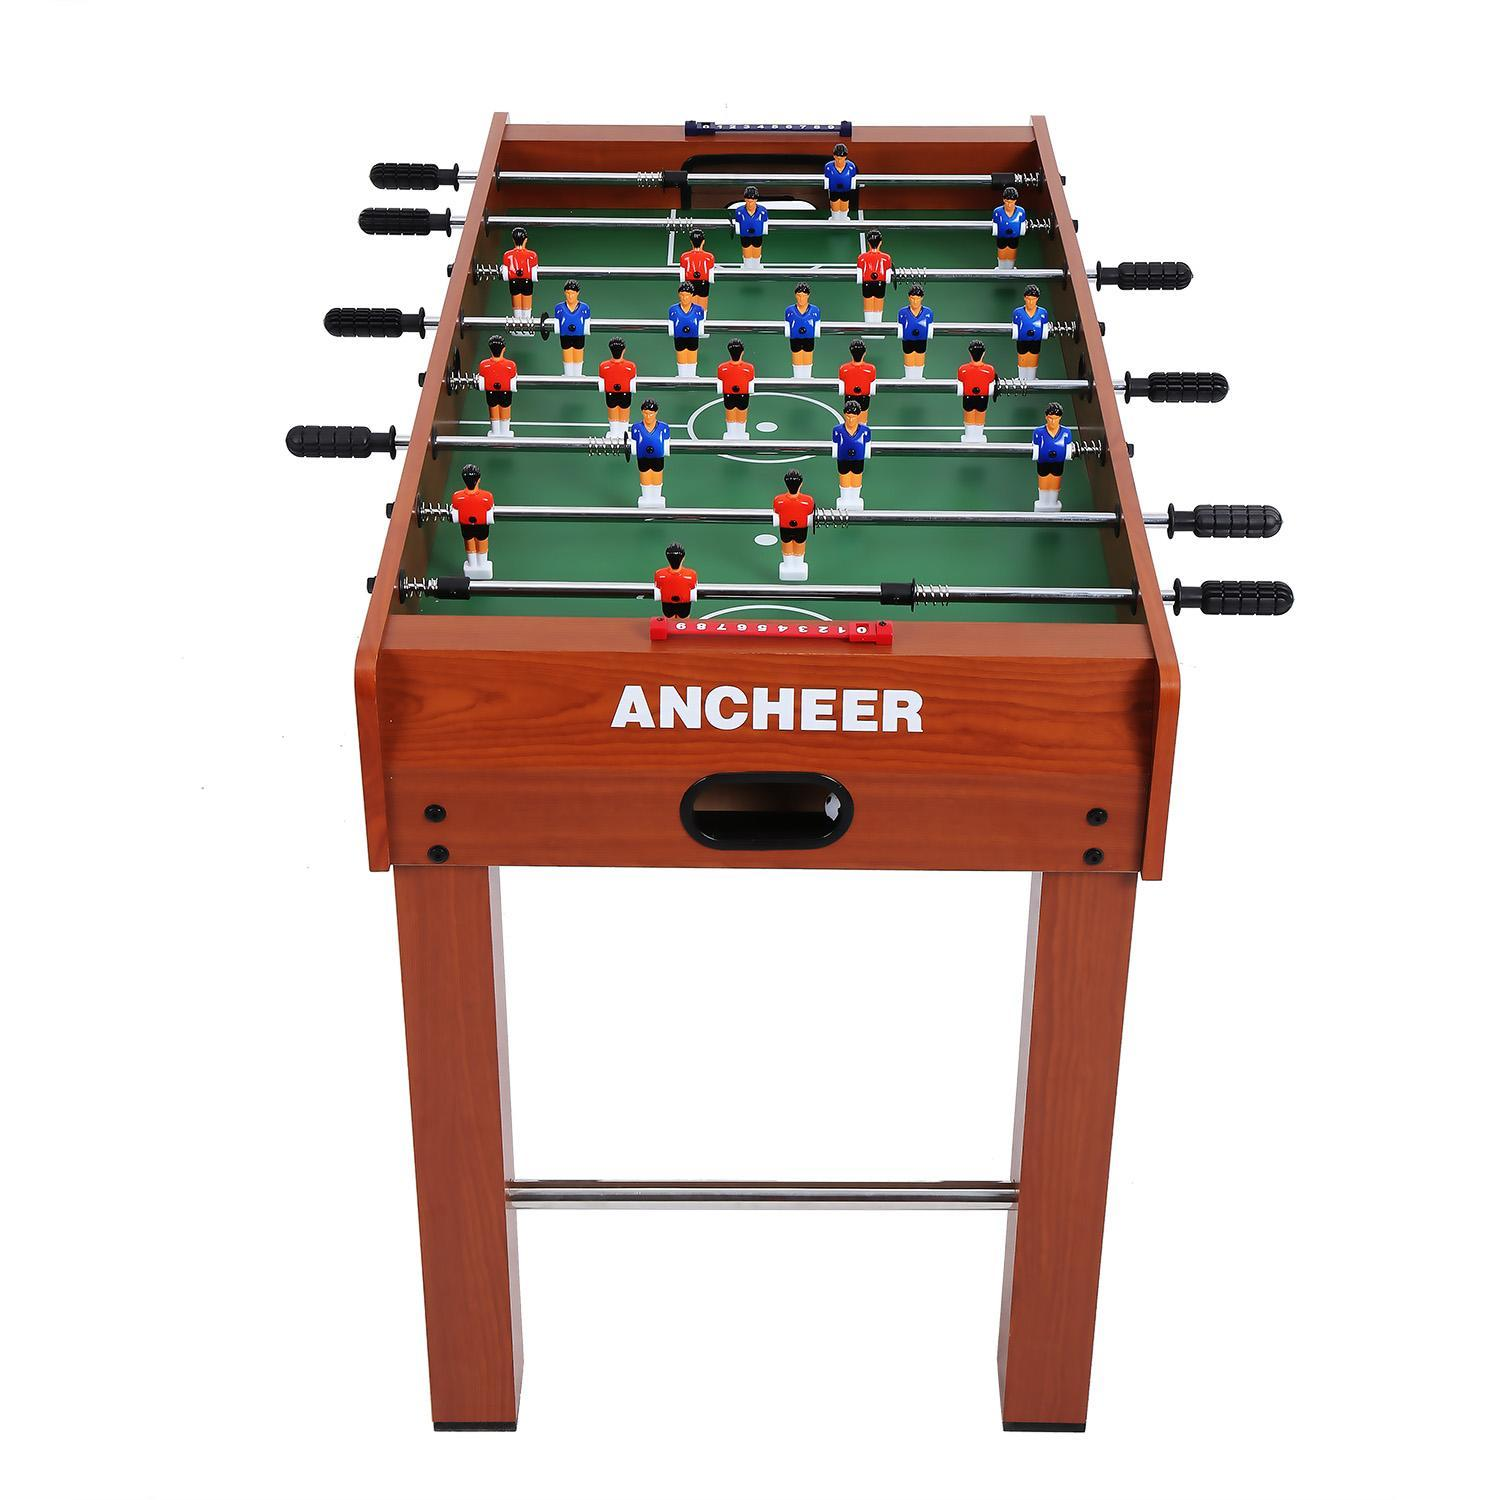 KORGOL Foosball Tables Soccer Table Competition Sized Arcade Game Room Table  Games Sport Hockey Family